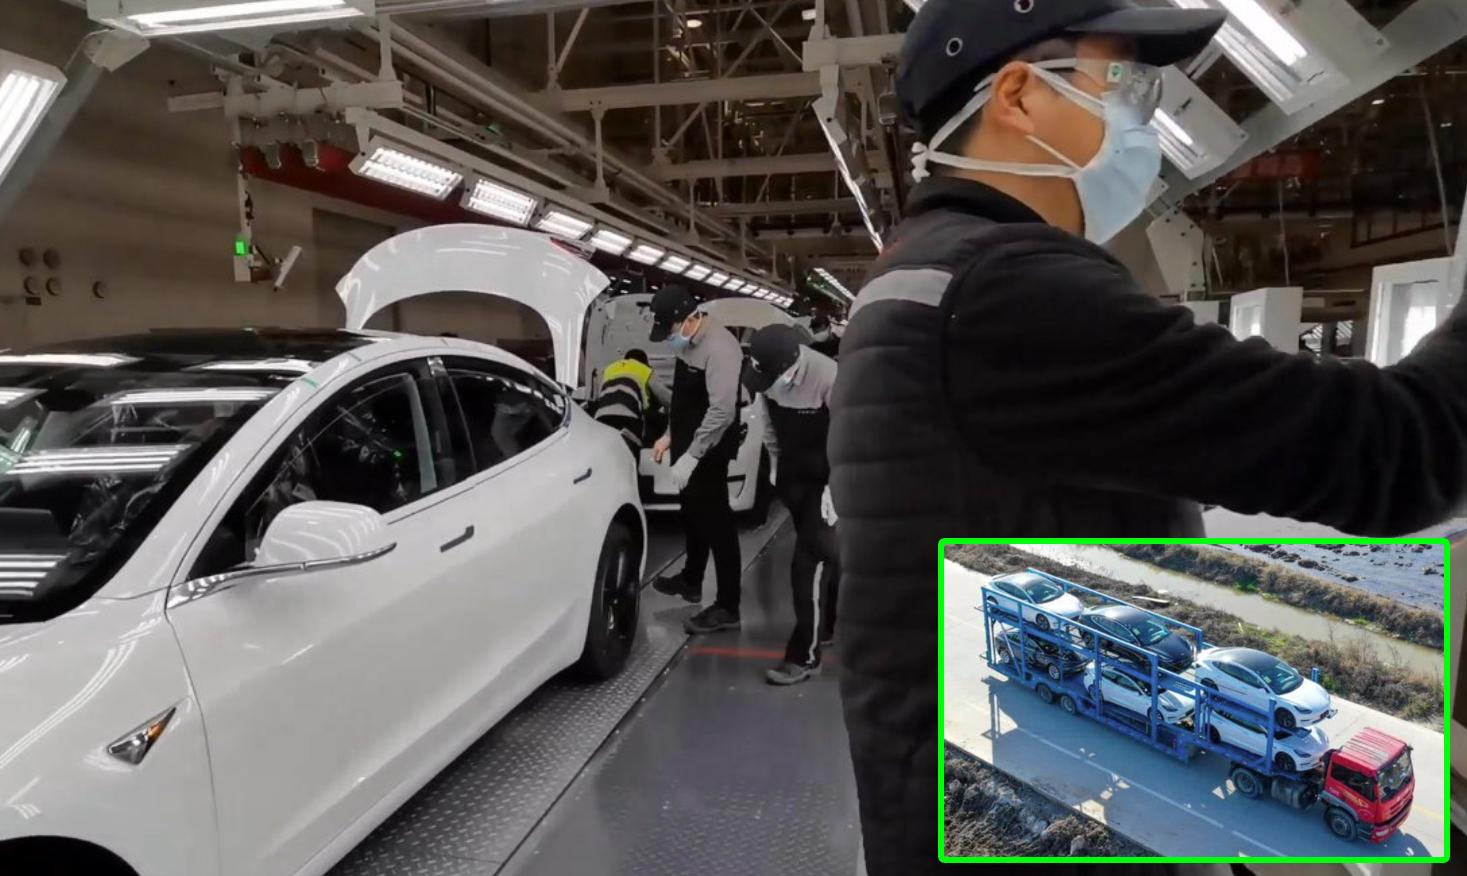 Tesla Giga 3 Shanghai Resumes Fully Production, Many China-Made Model 3 on Transport [Video]